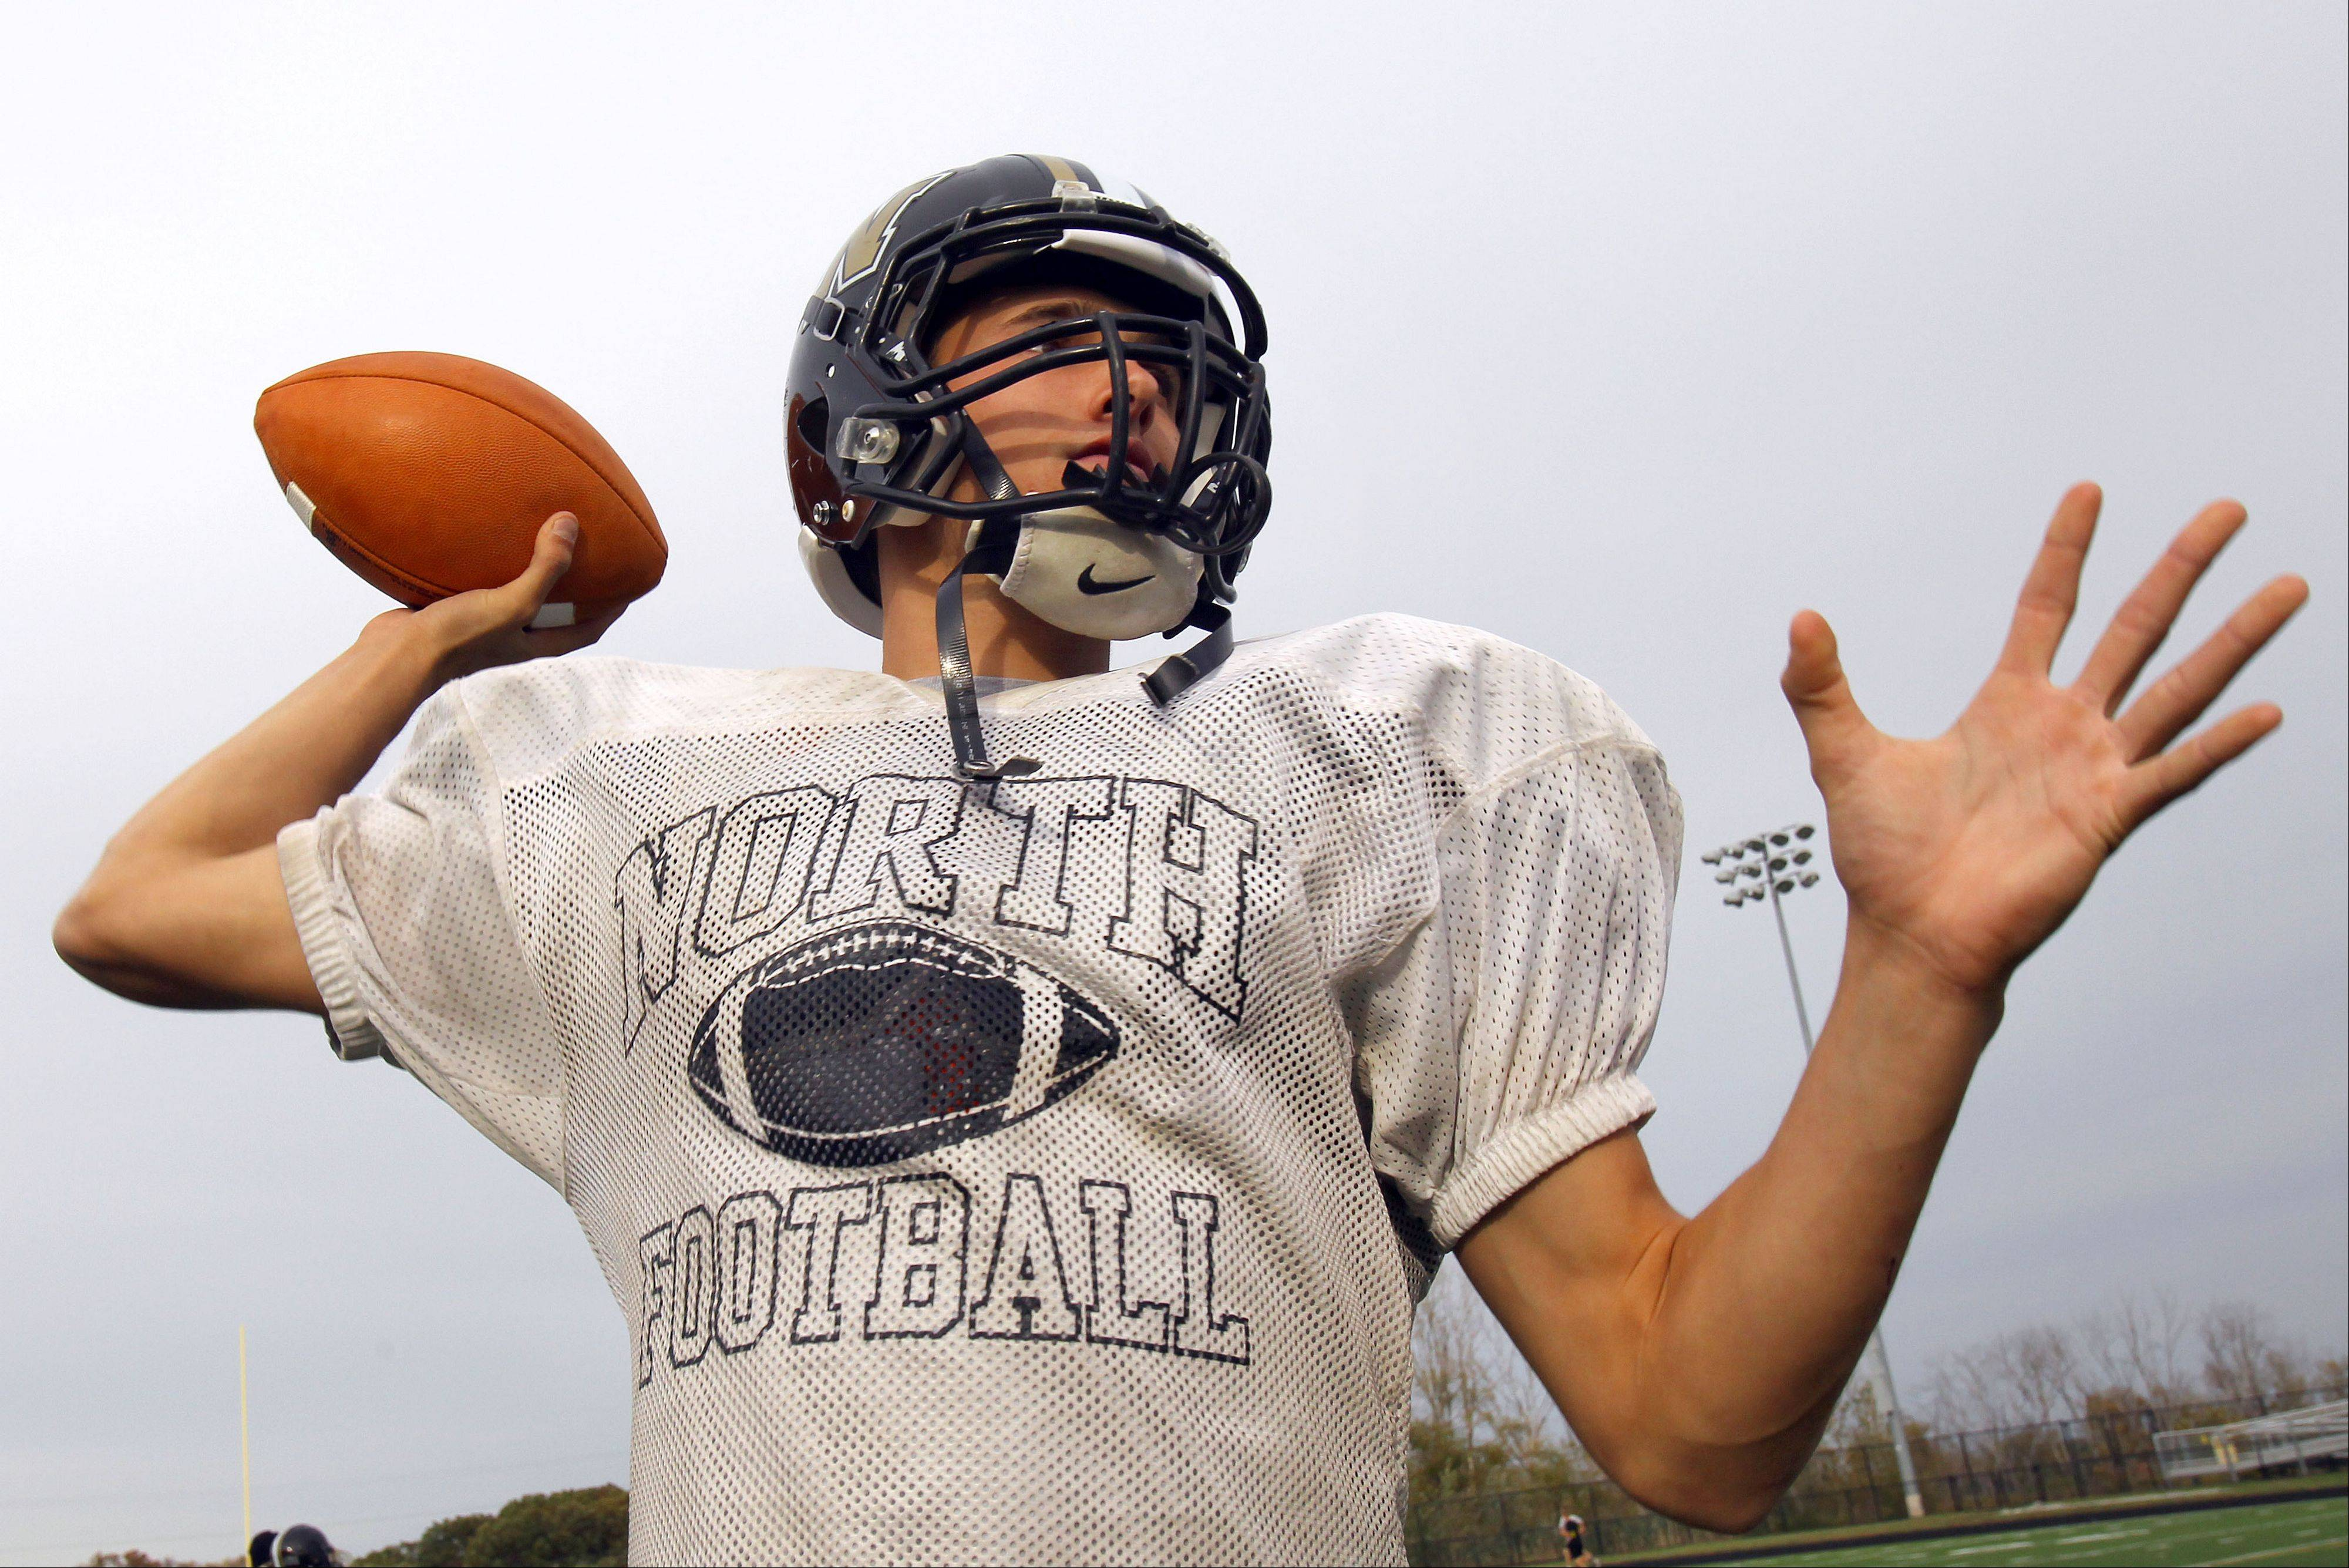 Grayslake North quarterback A.J. Fish has made a verbal commitment to play lacrosse at Virginia.